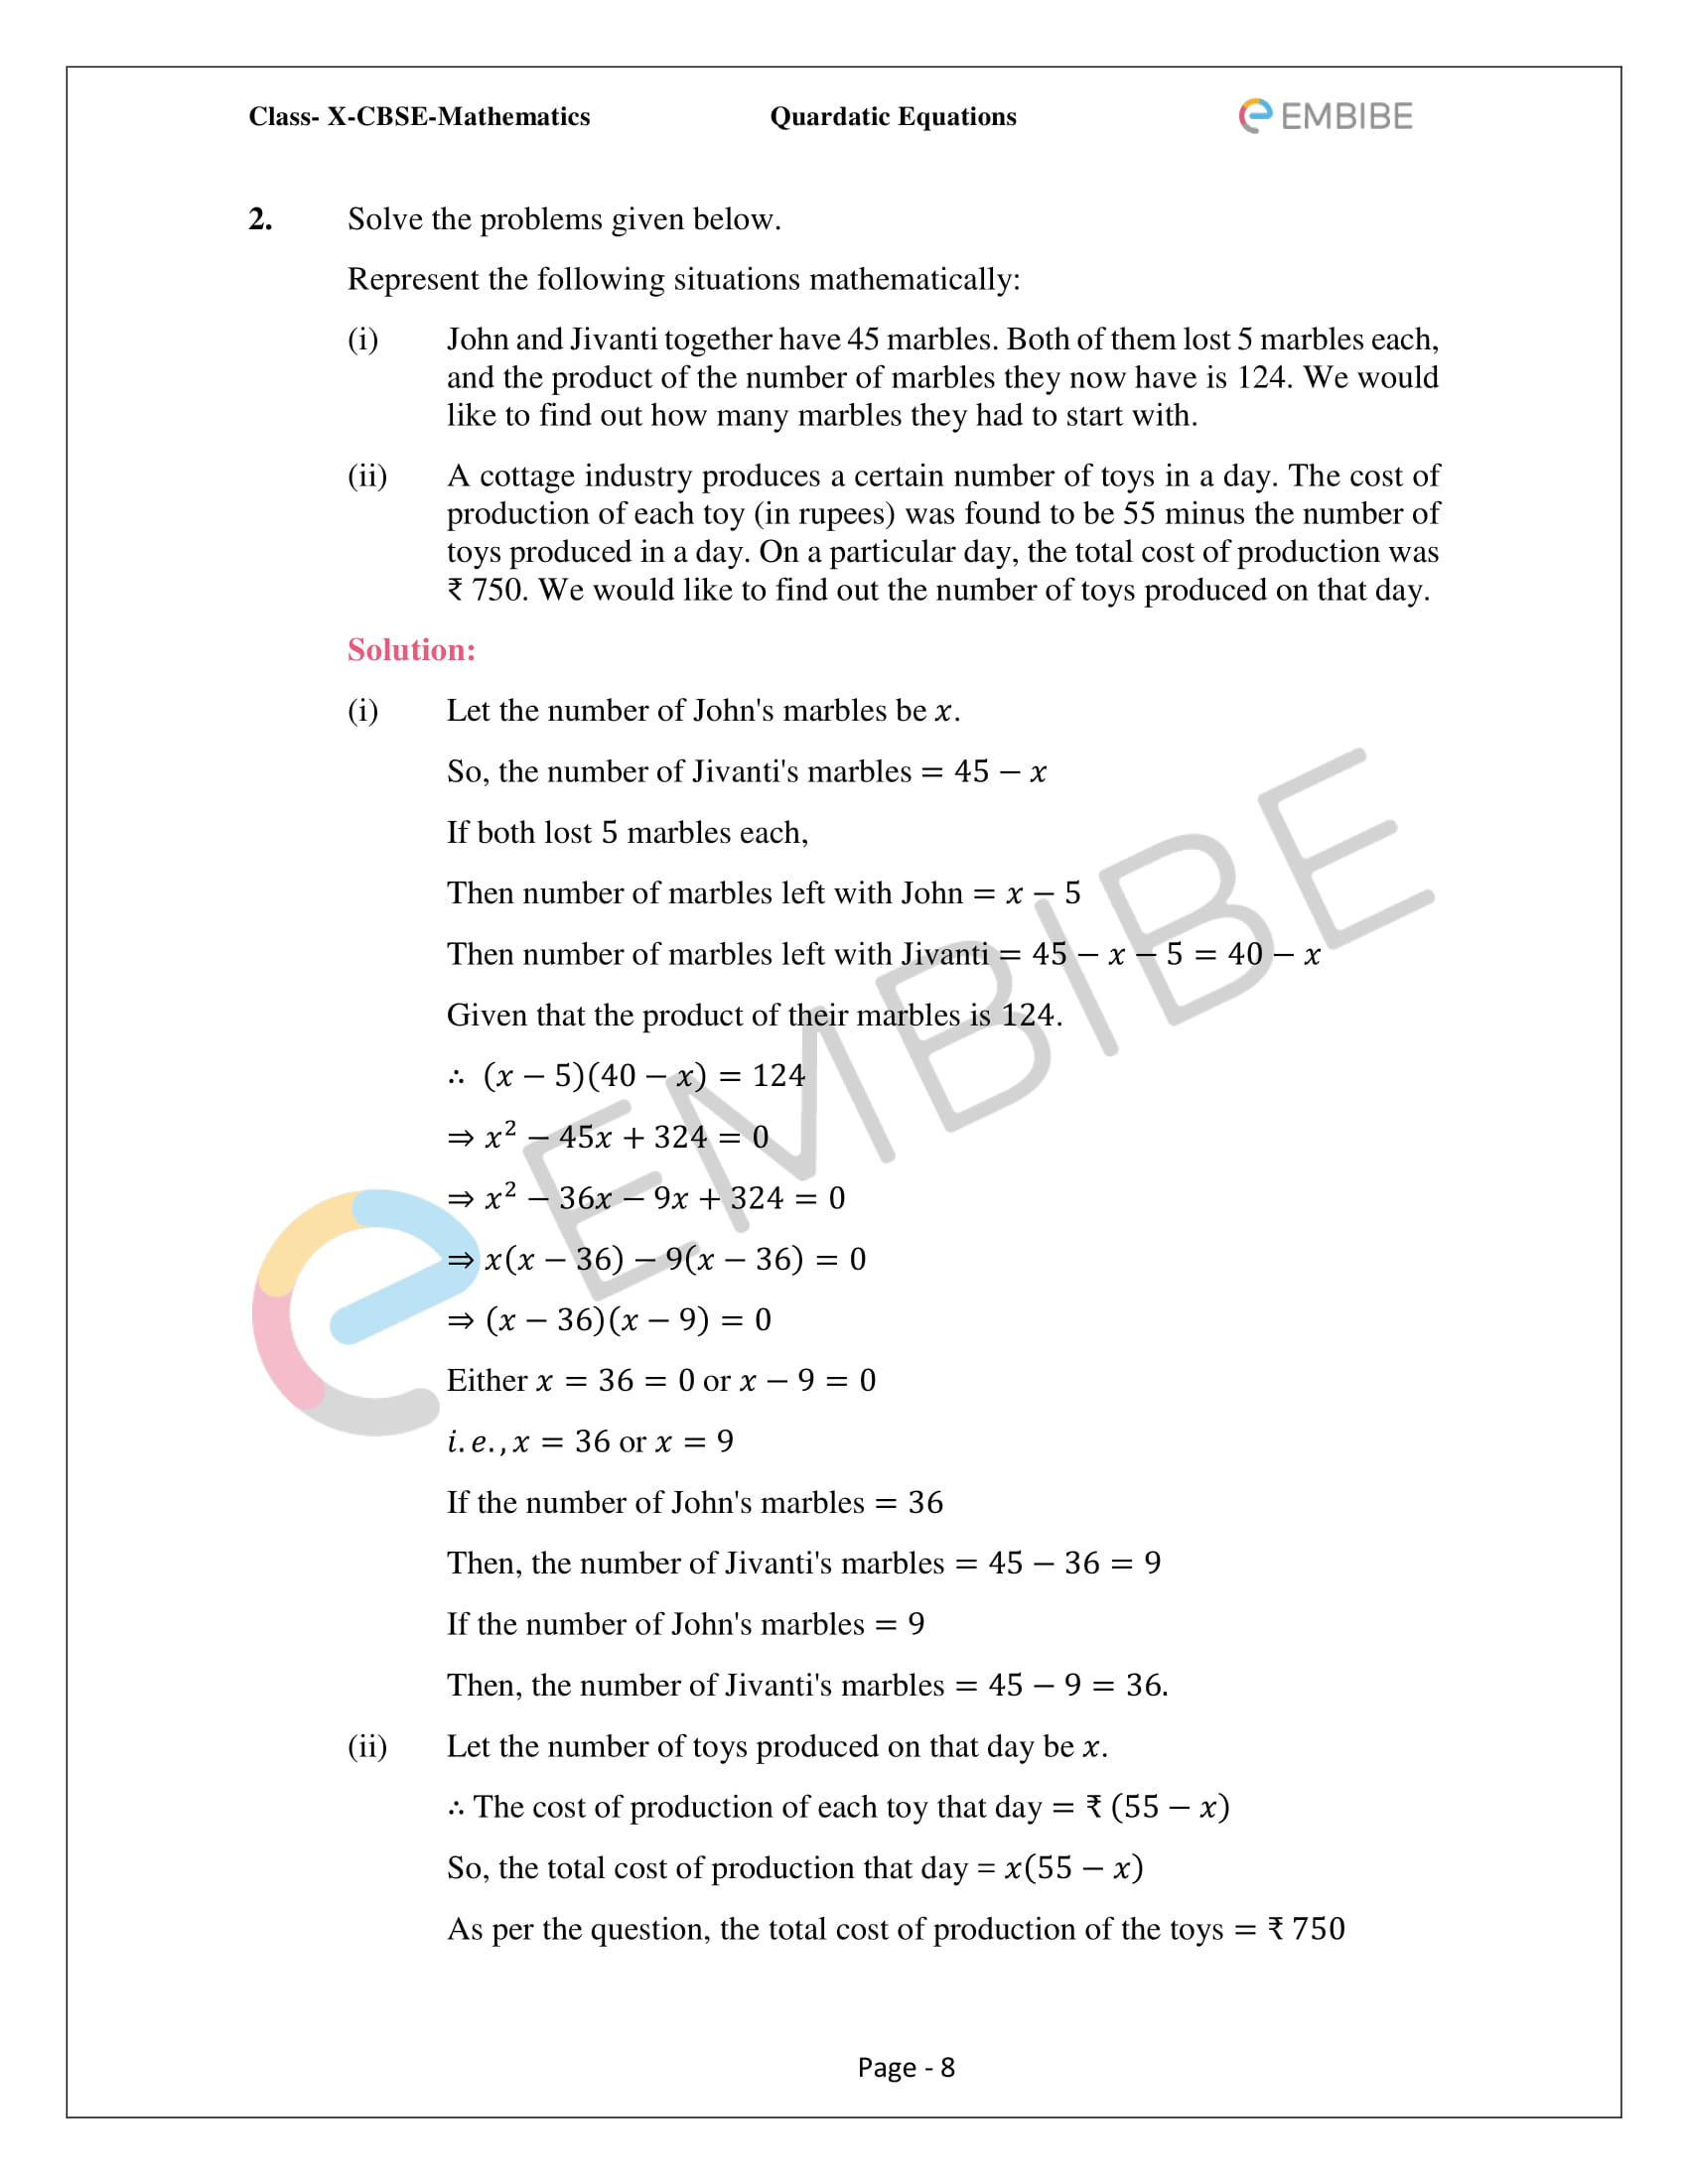 CBSE NCERT Solutions For Class 10 Maths Chapter 4 – Quadratic Equations - 8